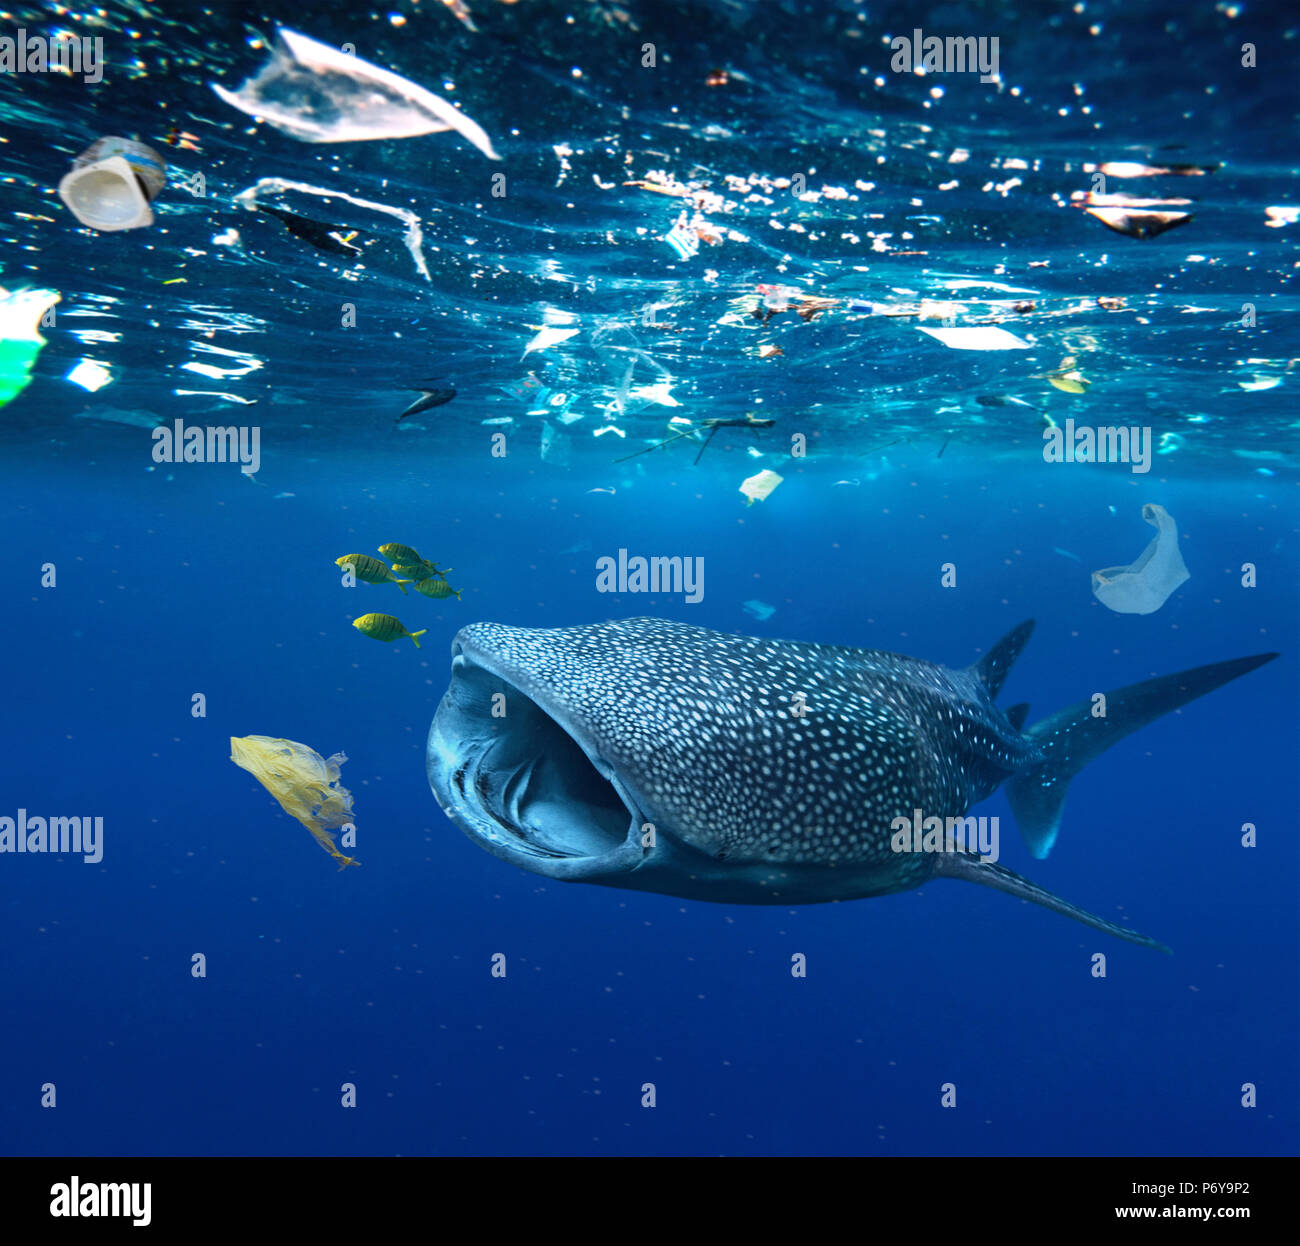 Whale shark, Rhincodon typus, feeding in the middle of plastic bags and other plastic garbage. - Stock Image